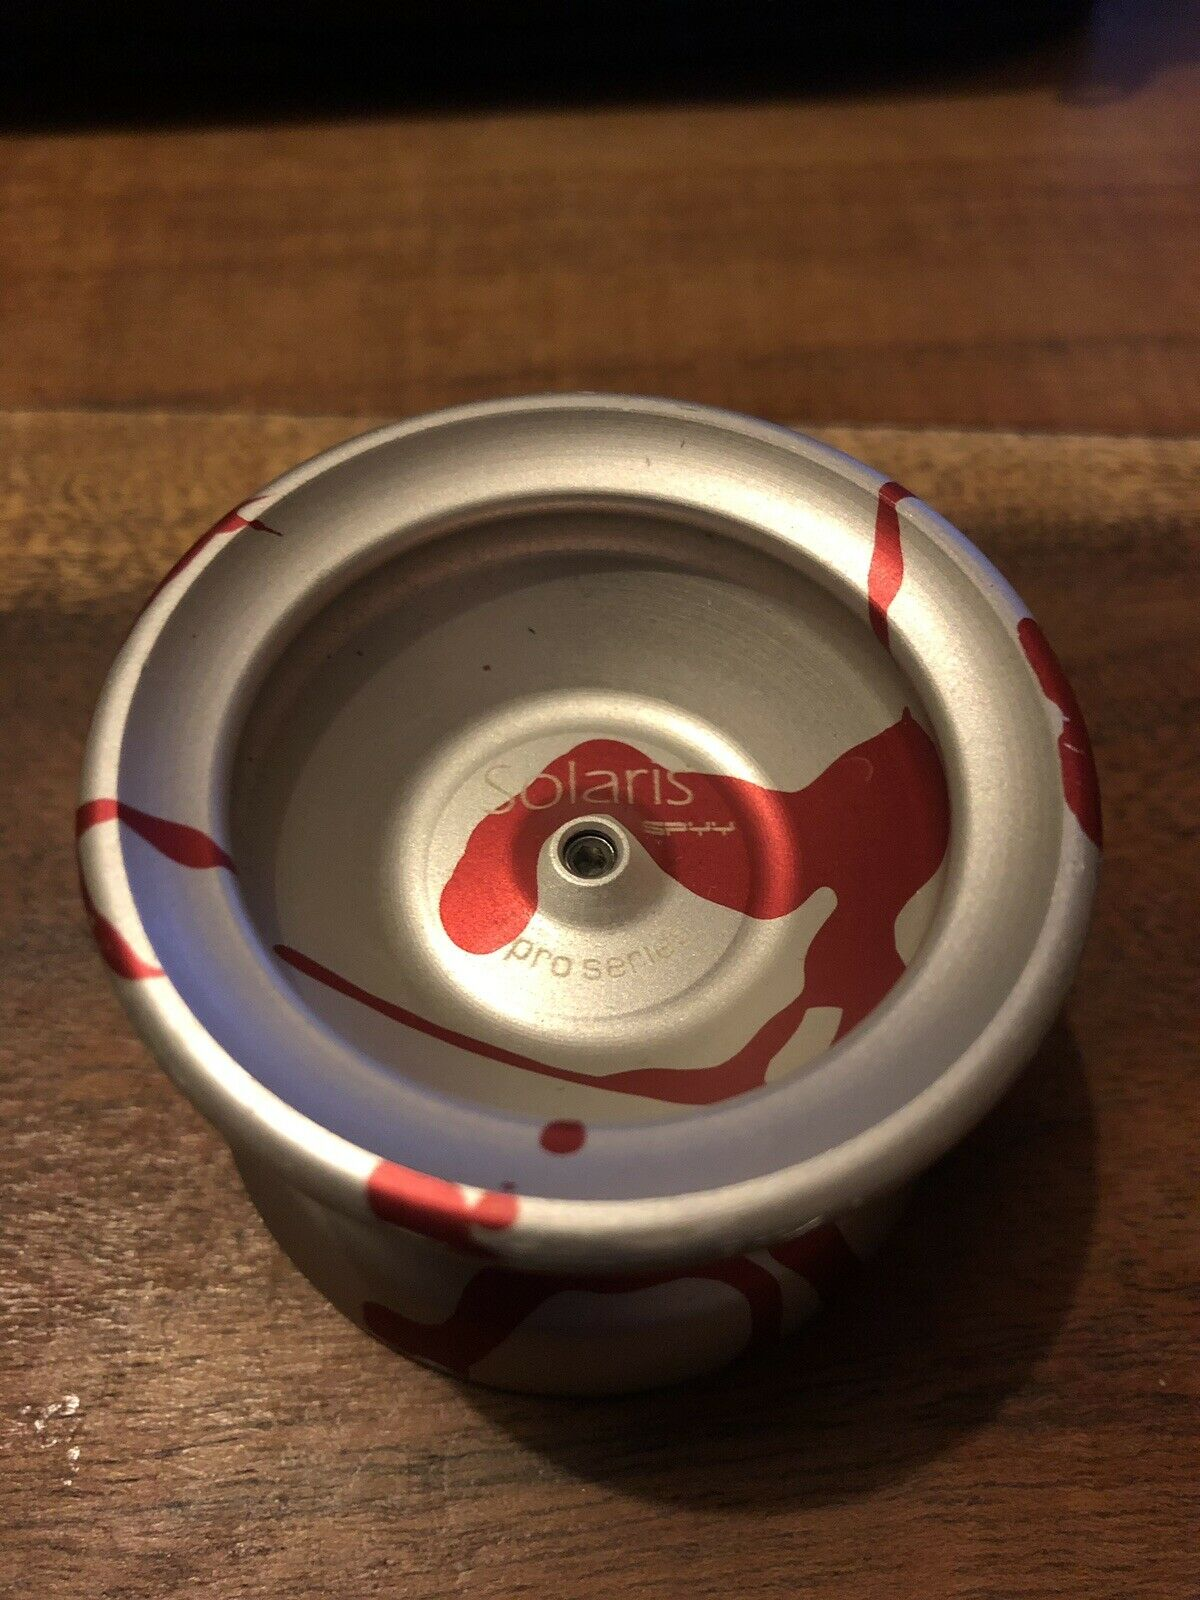 Spyy Solaris Pro Level Yoyo Unresponsive